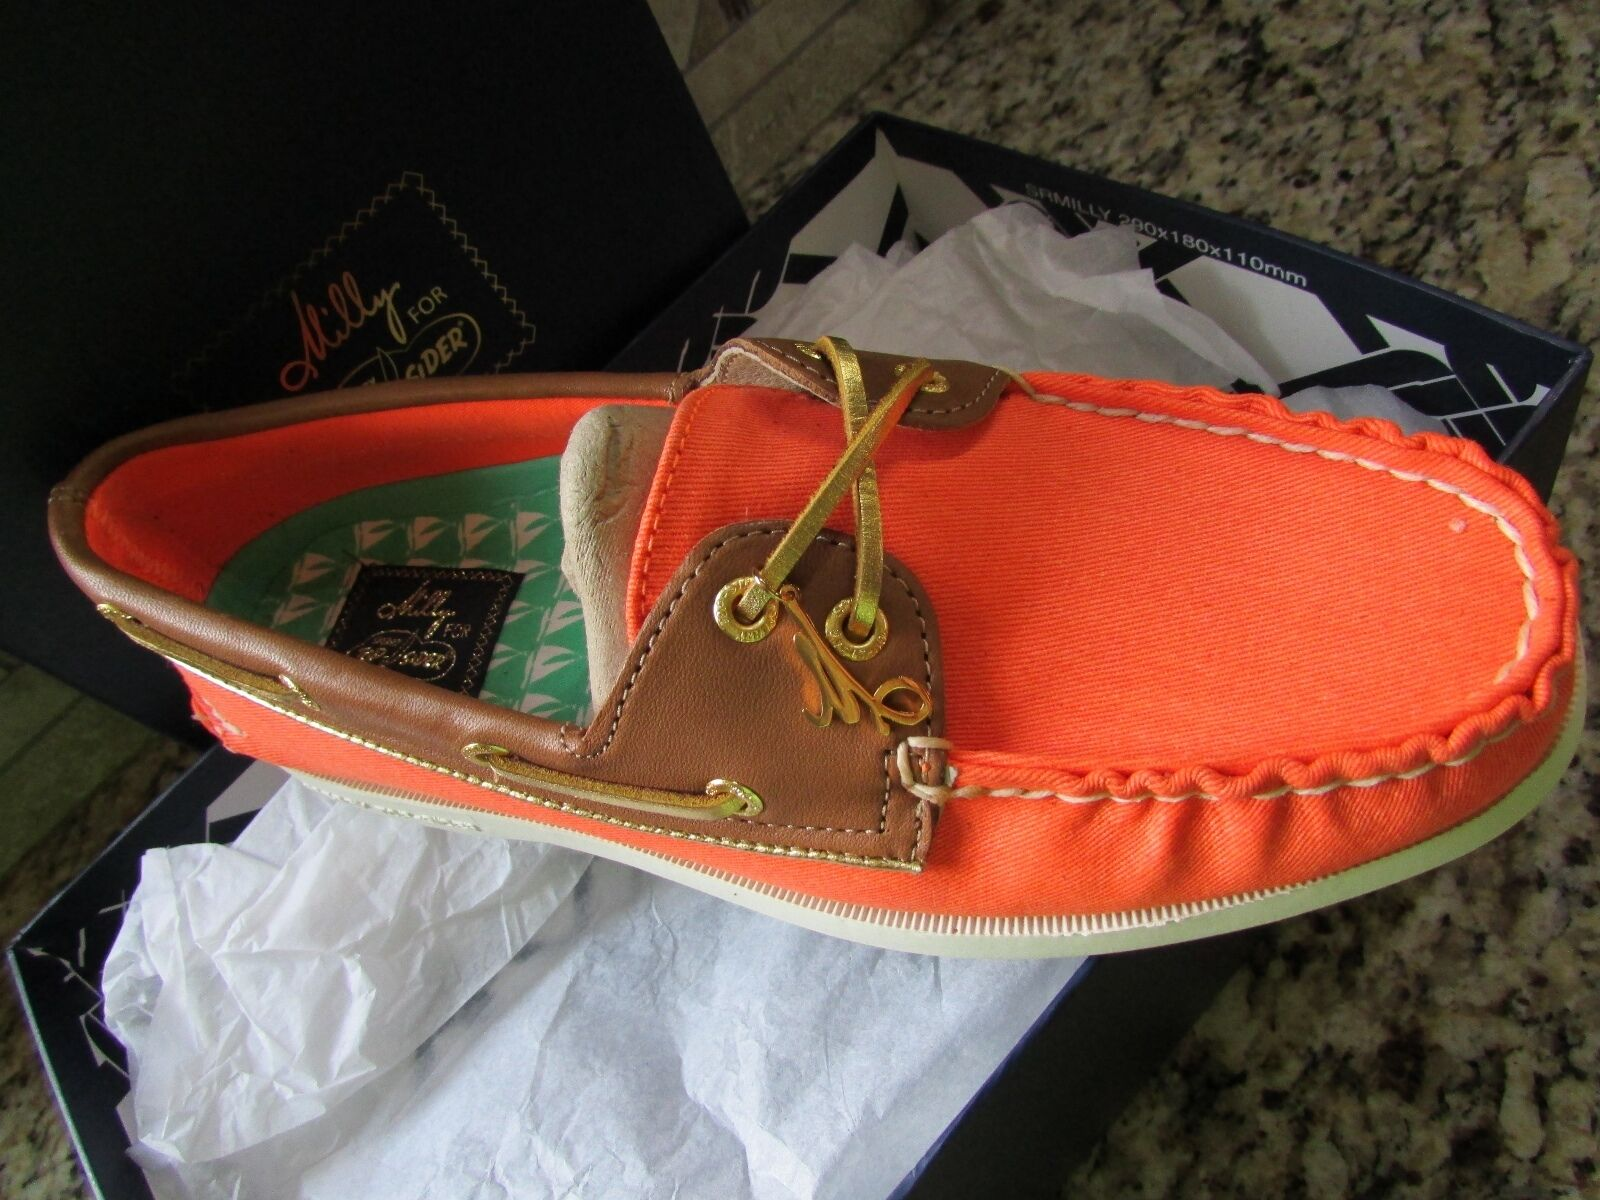 NEW SPERRY TOP-SIDER A/O ORANGE CVS COGNAC BOAT SCARPE Donna 7.5 FREE SHIP  130